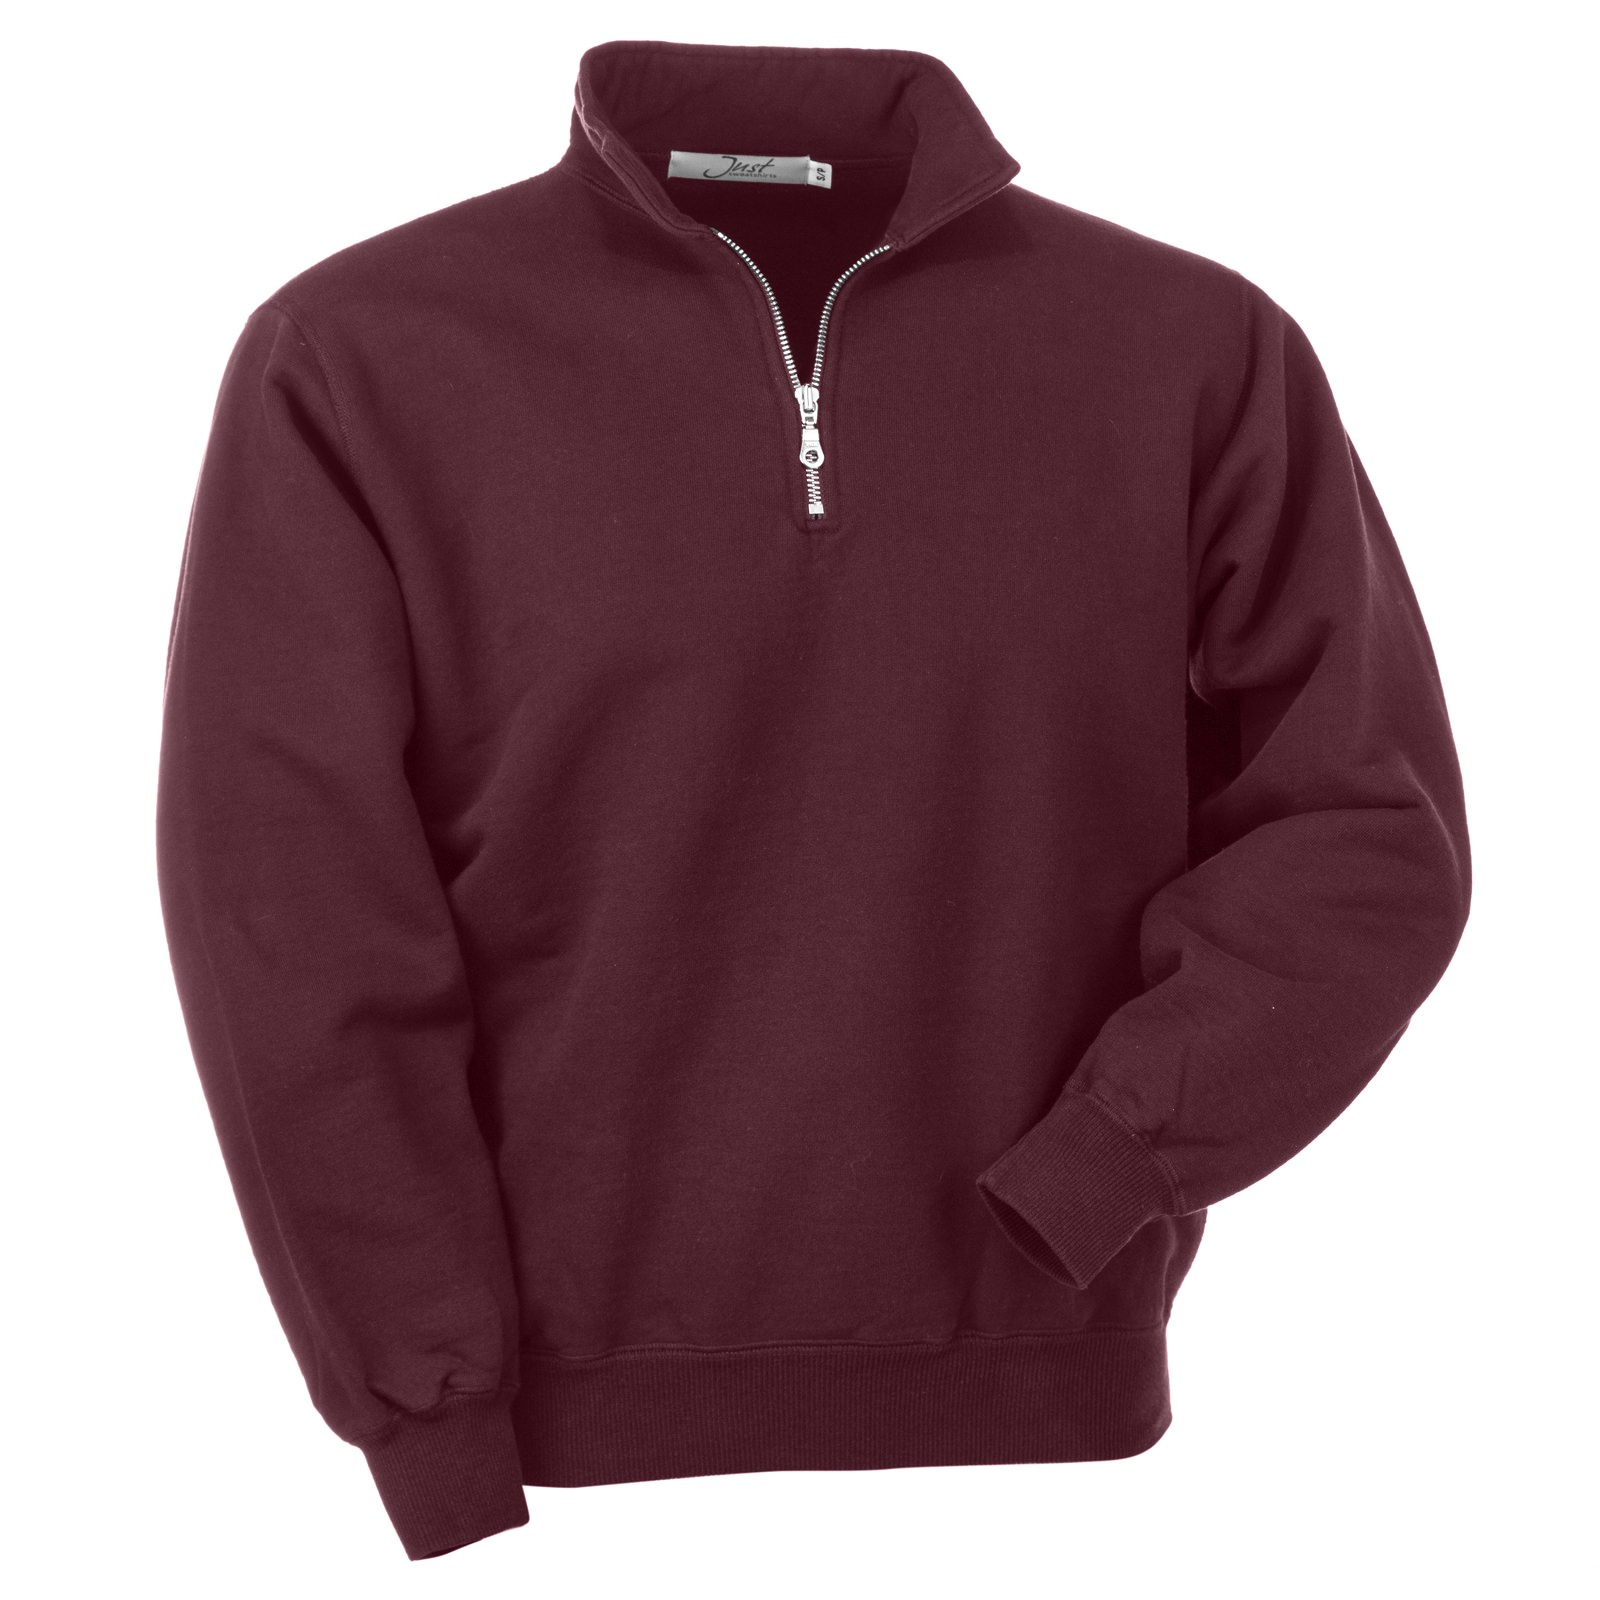 Zip Neck True Burgundy 100% Cotton